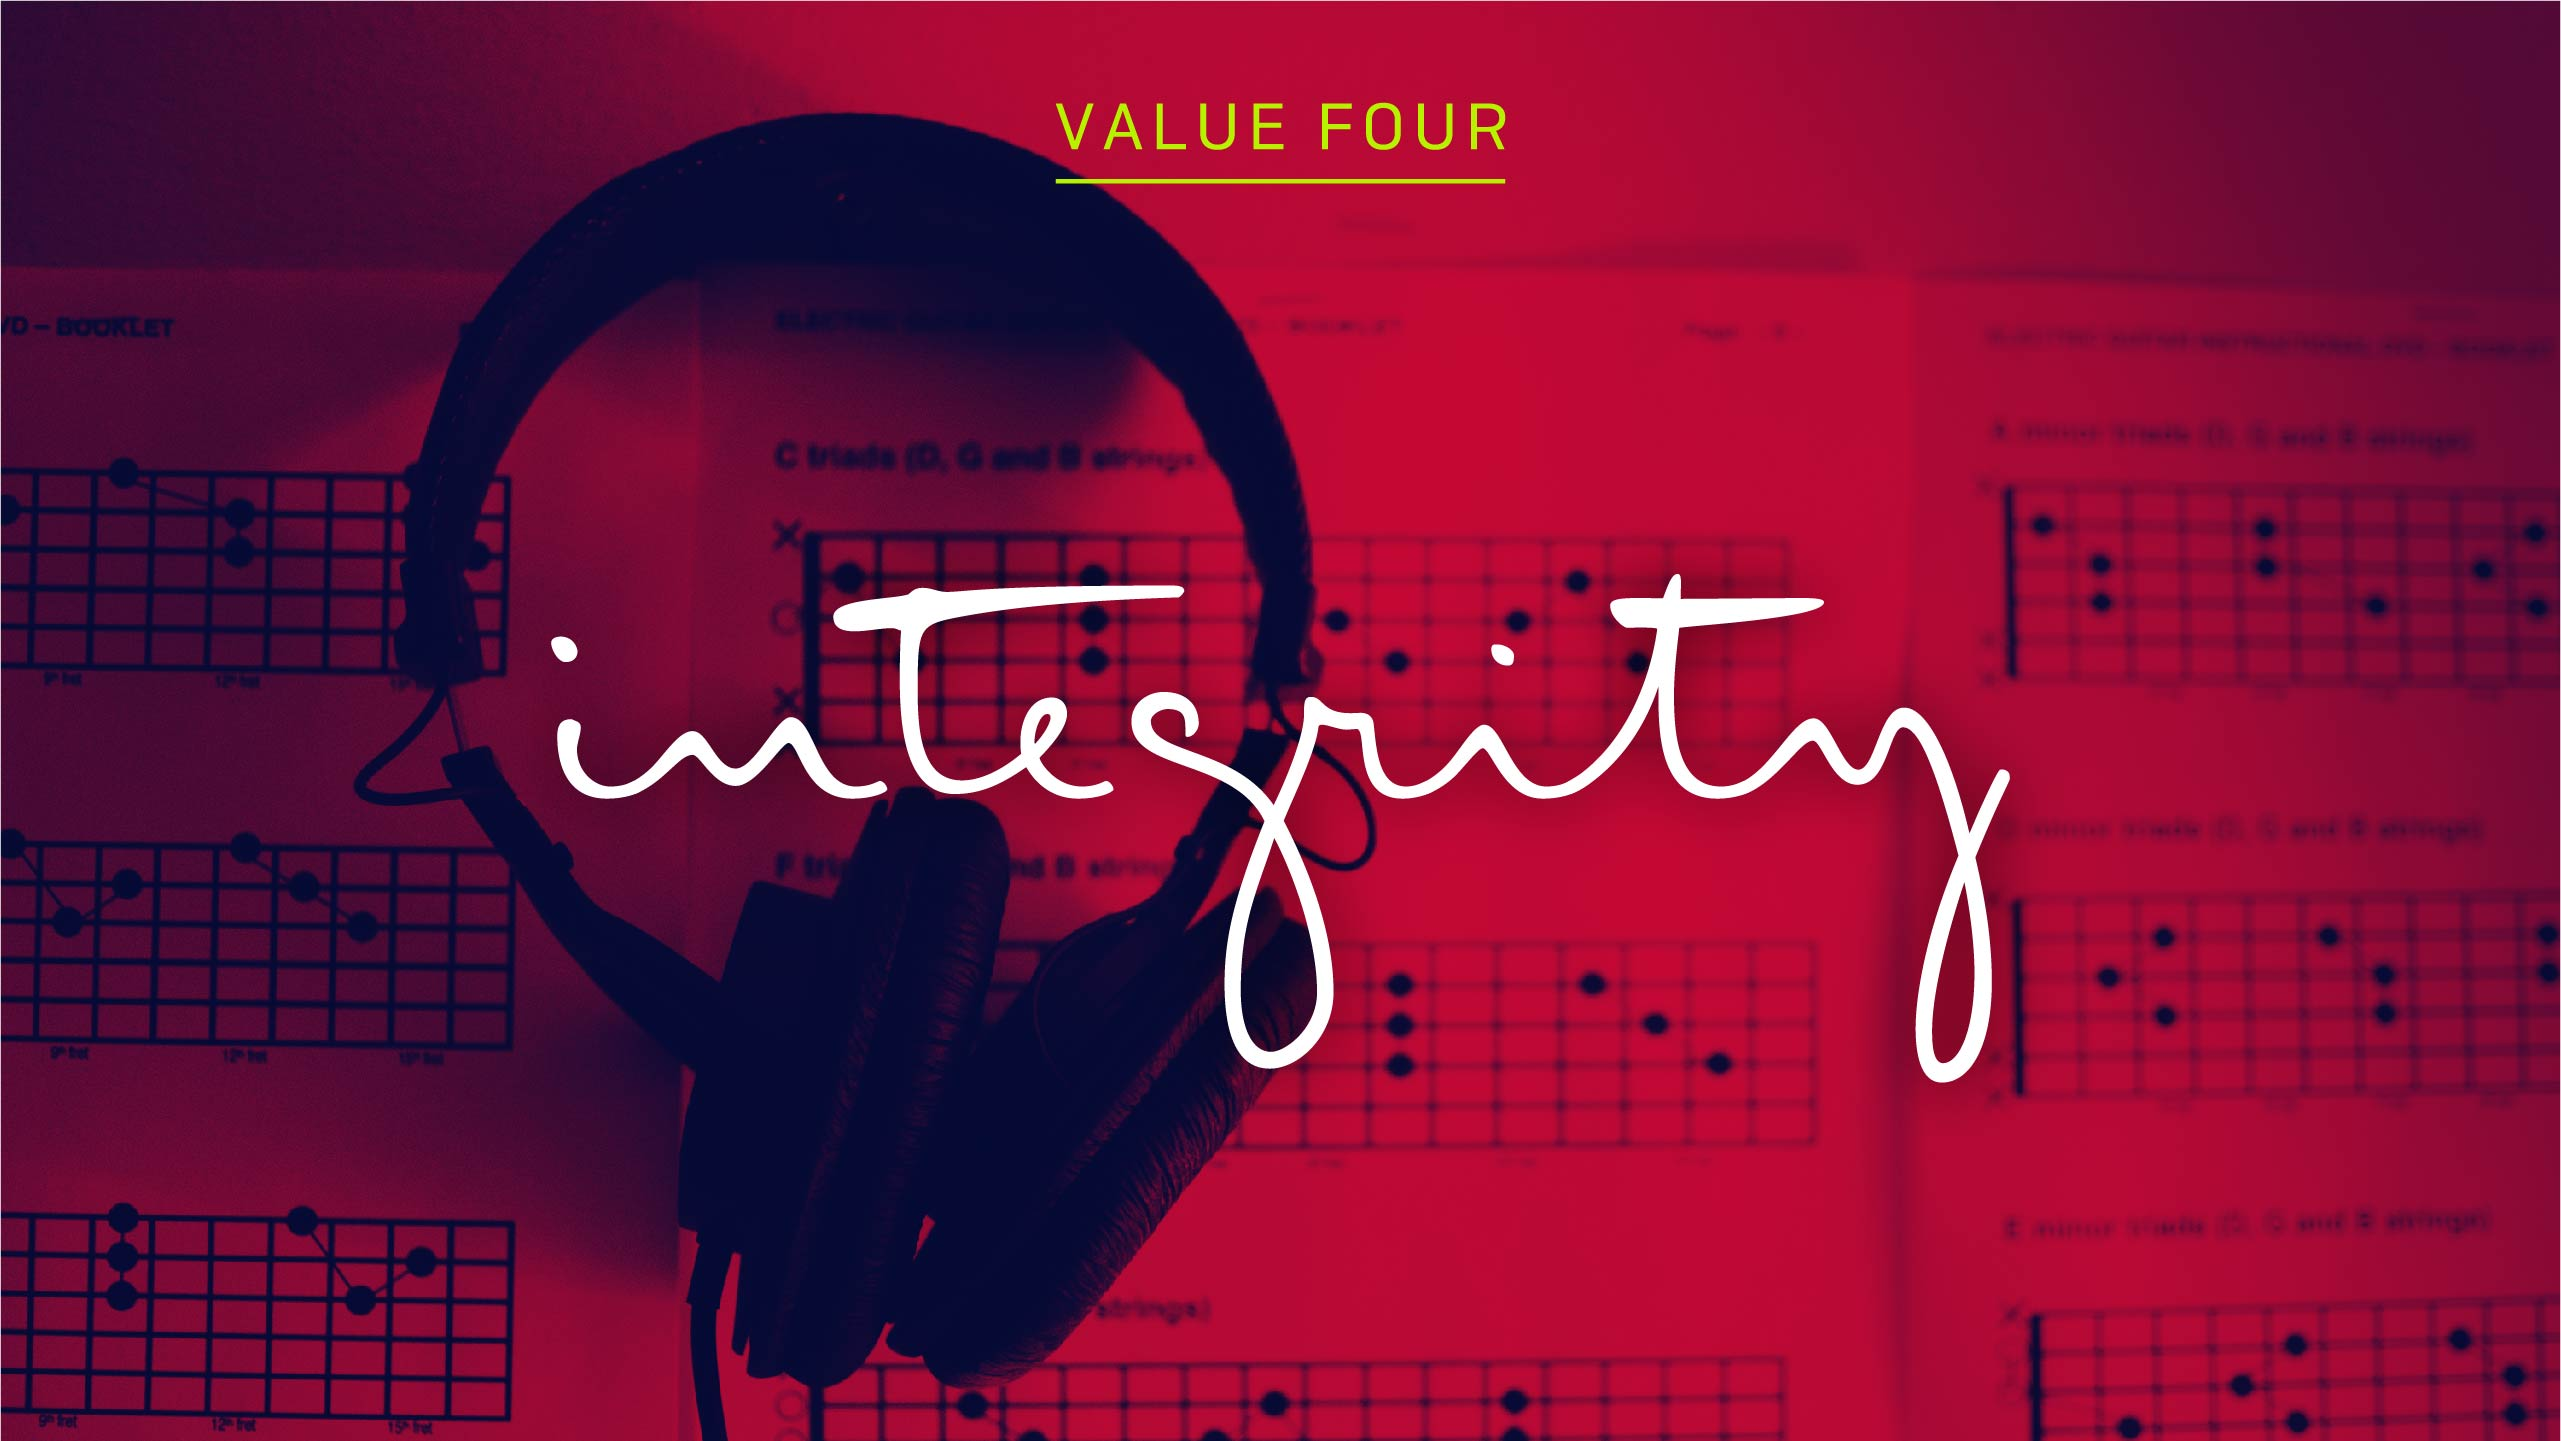 PRS Values - Integrity